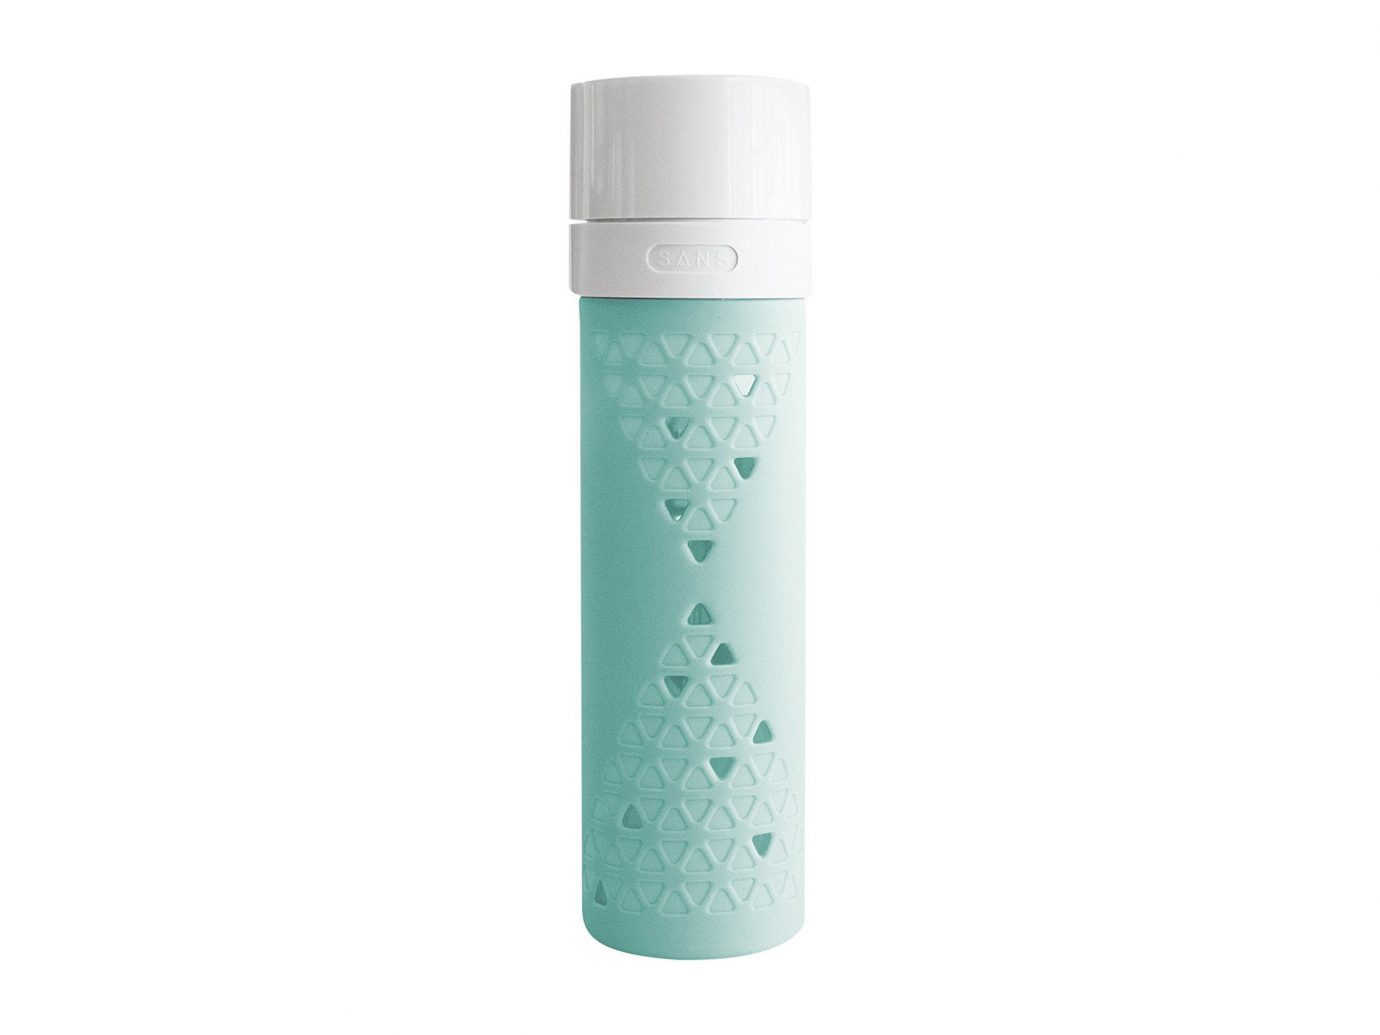 Style + Design water bottle product bottle product design liquid turquoise